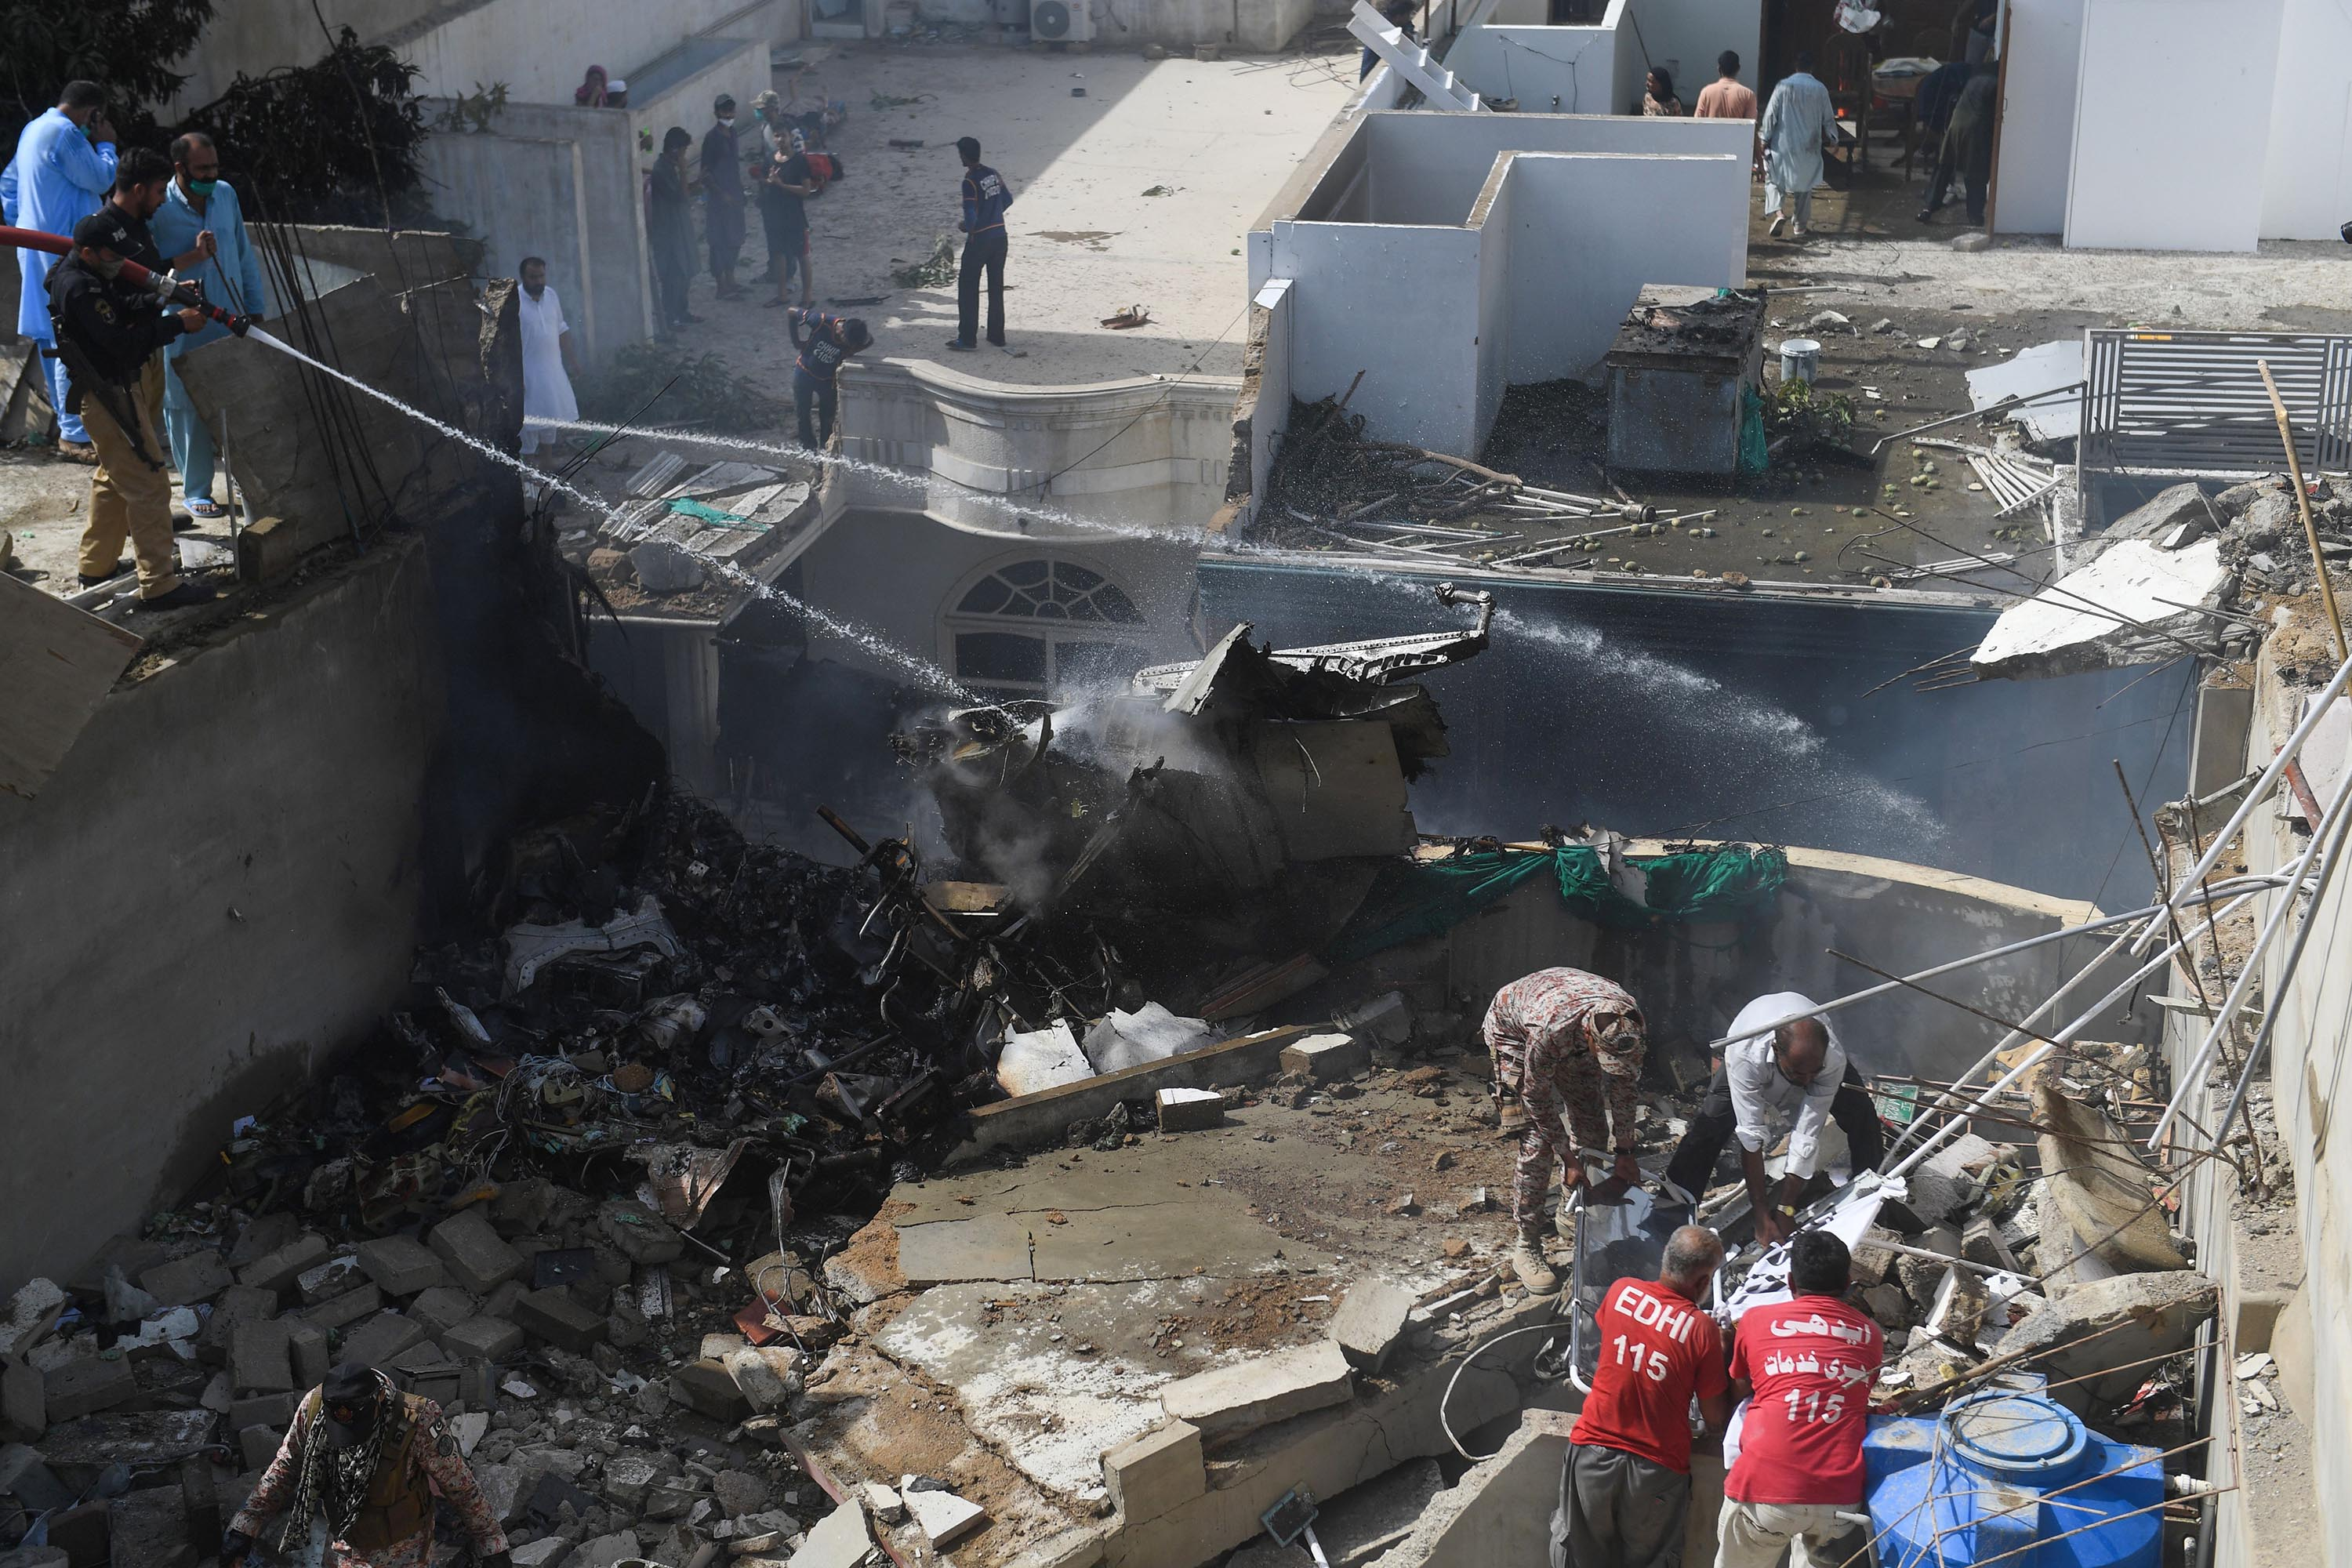 Emergency personnel work at the scene of the Pakistan International Airlines crash in Karachi on Friday.